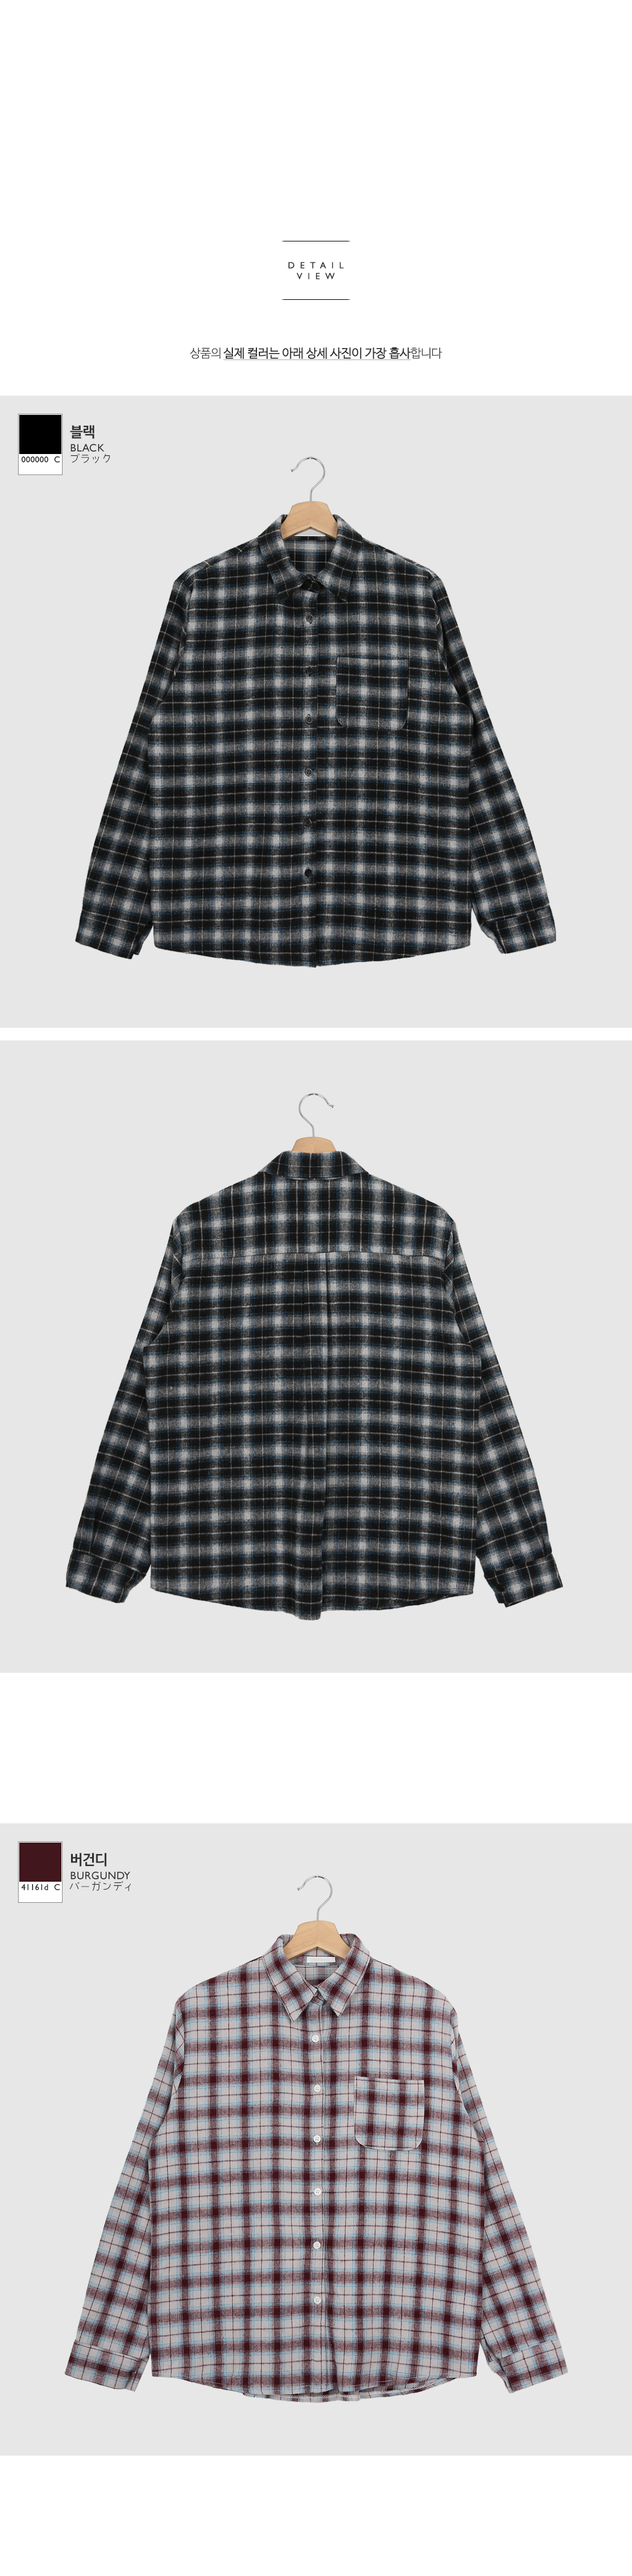 Blue Point raising check shirt